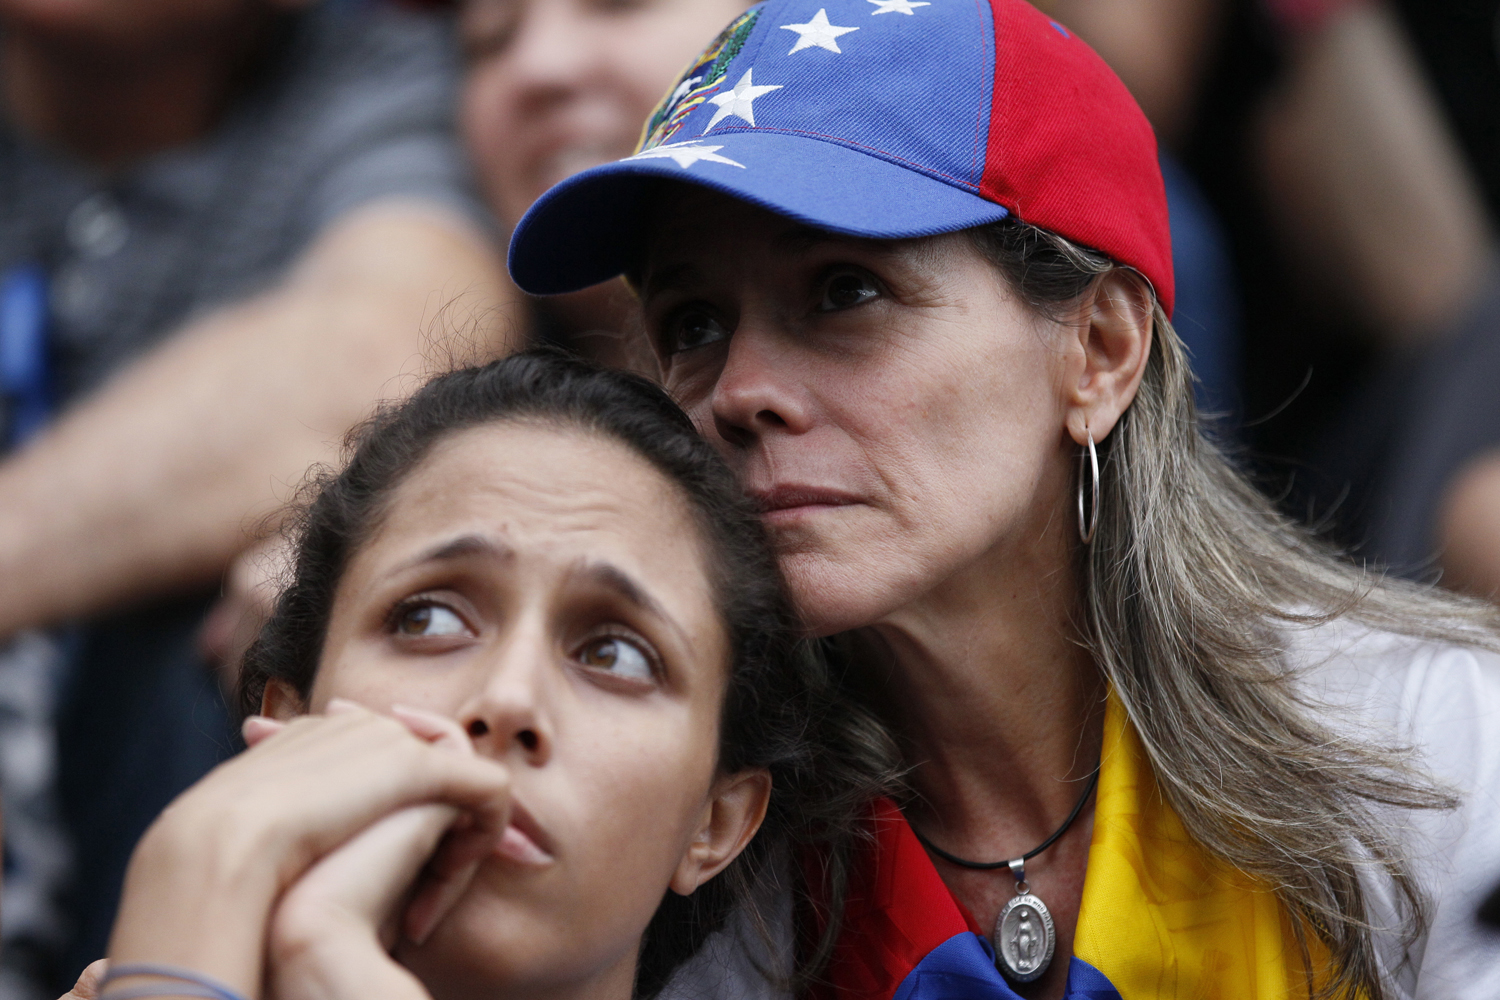 Anti-government demonstrators attend a vigil in honor of those who have been killed during clashes between security forces and demonstrators in Caracas, Venezuela, Monday, July 31, 2017. (Ariana Cubillos/AP)